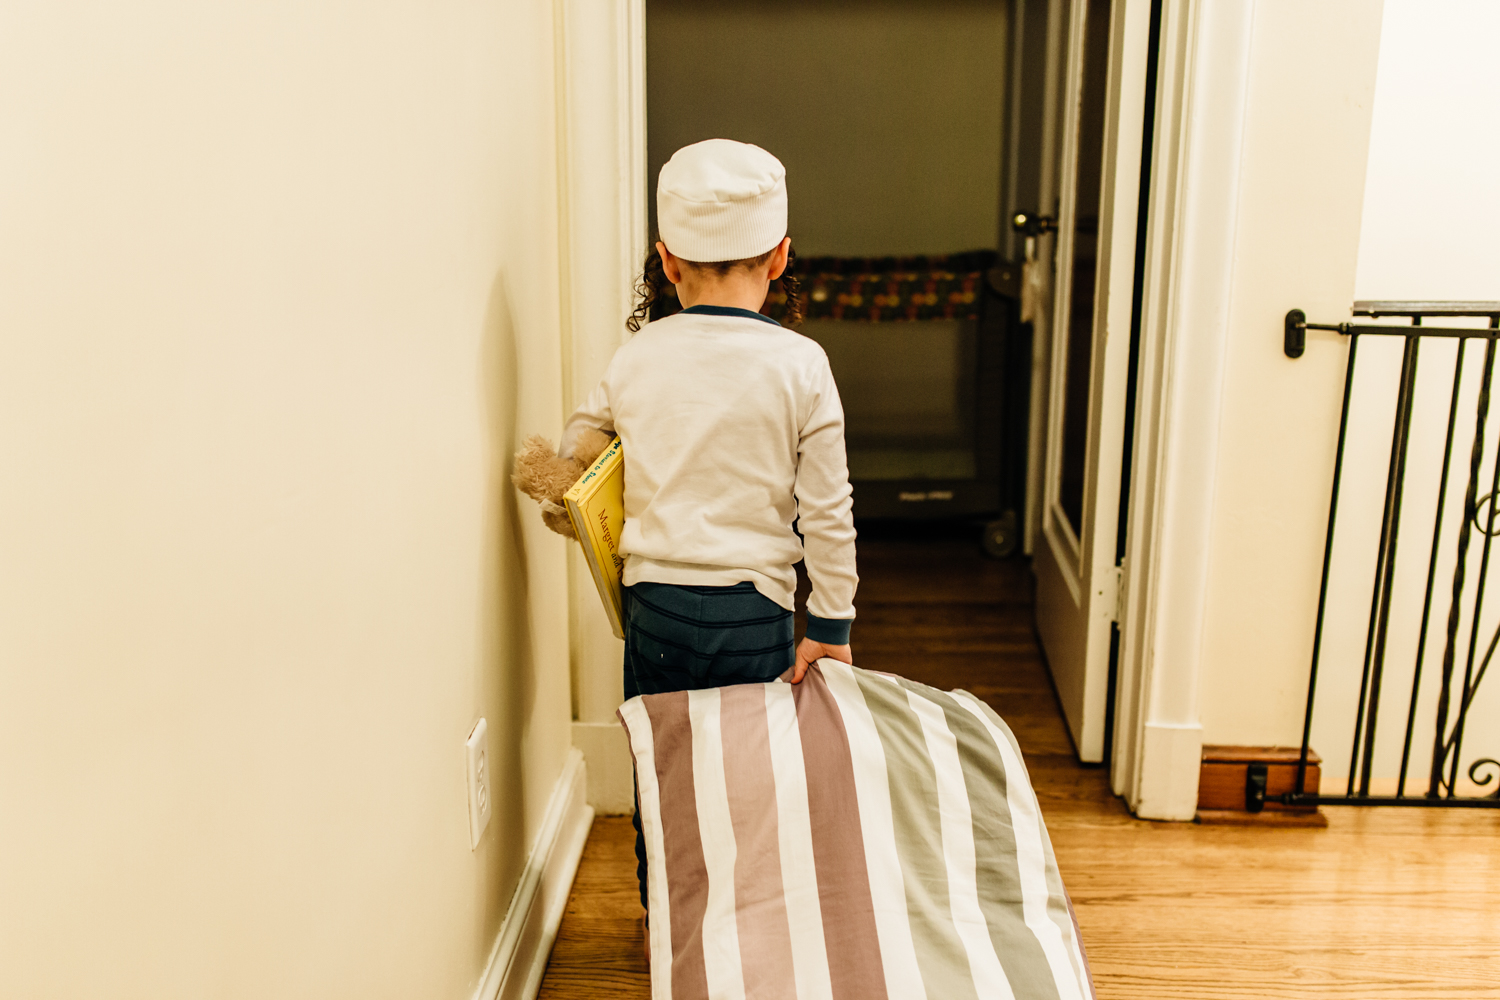 Little boy wearing pajamas walking in the hallway, pulling his pillow and holding a book and his teddybear